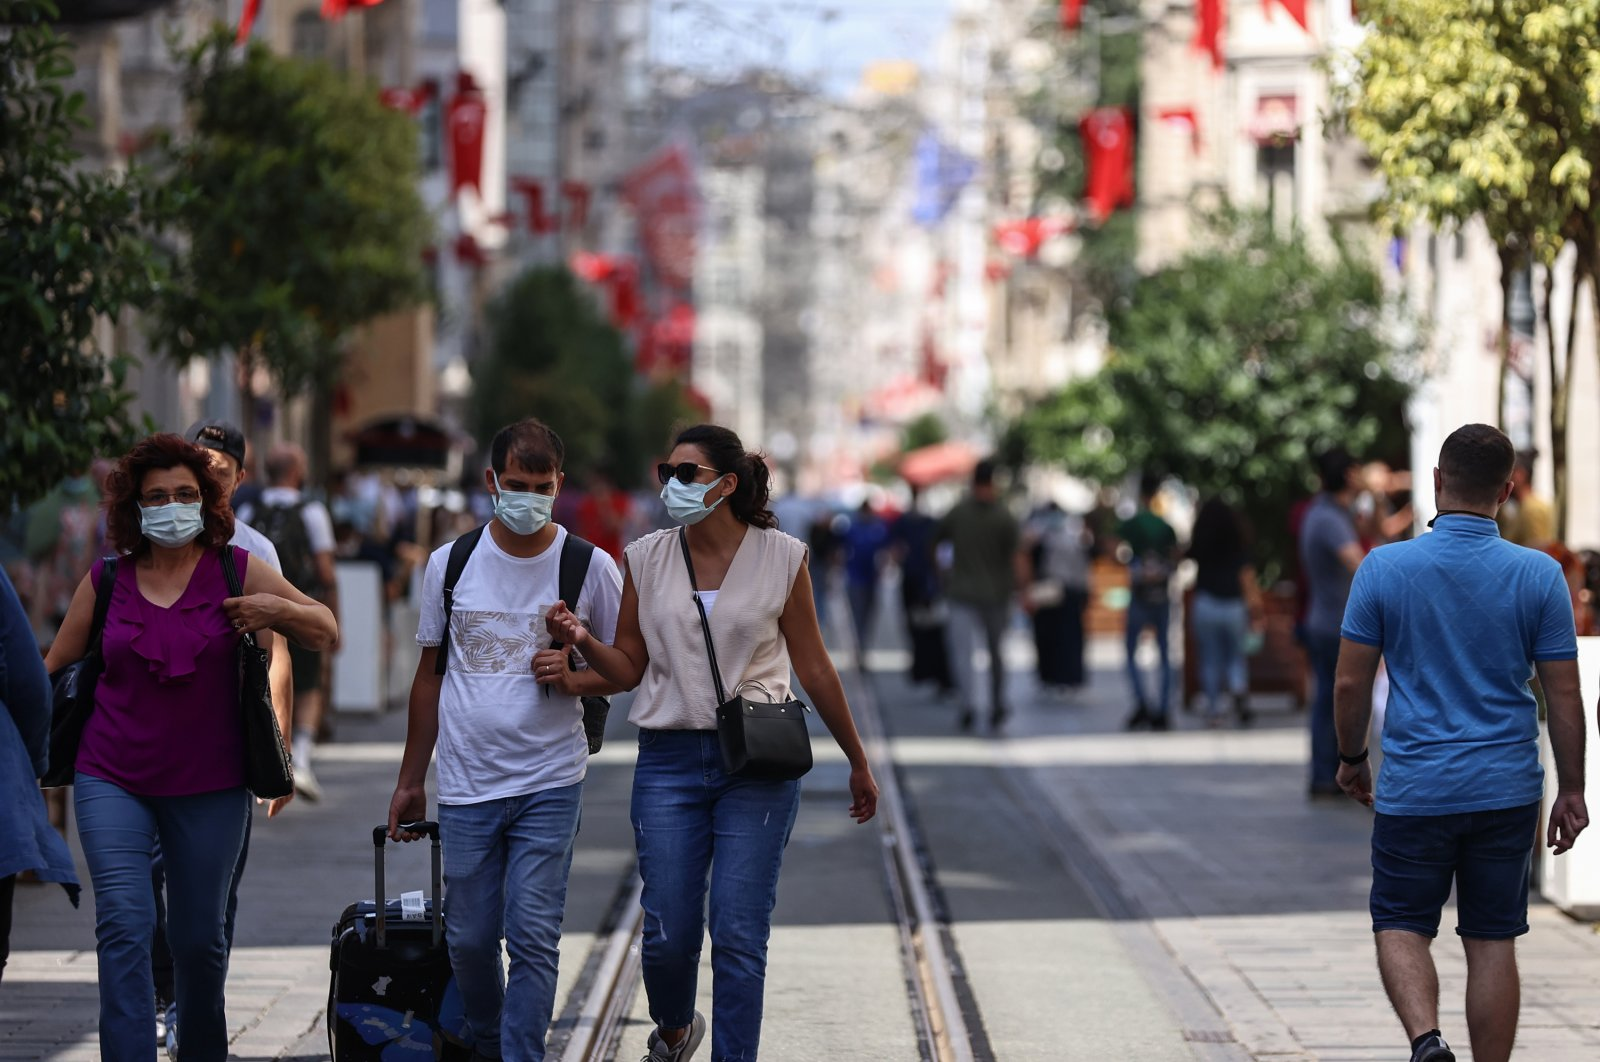 People wearing protective masks walk down Istiklal Avenue, in Istanbul, Turkey, June 27, 2021. (AA PHOTO)